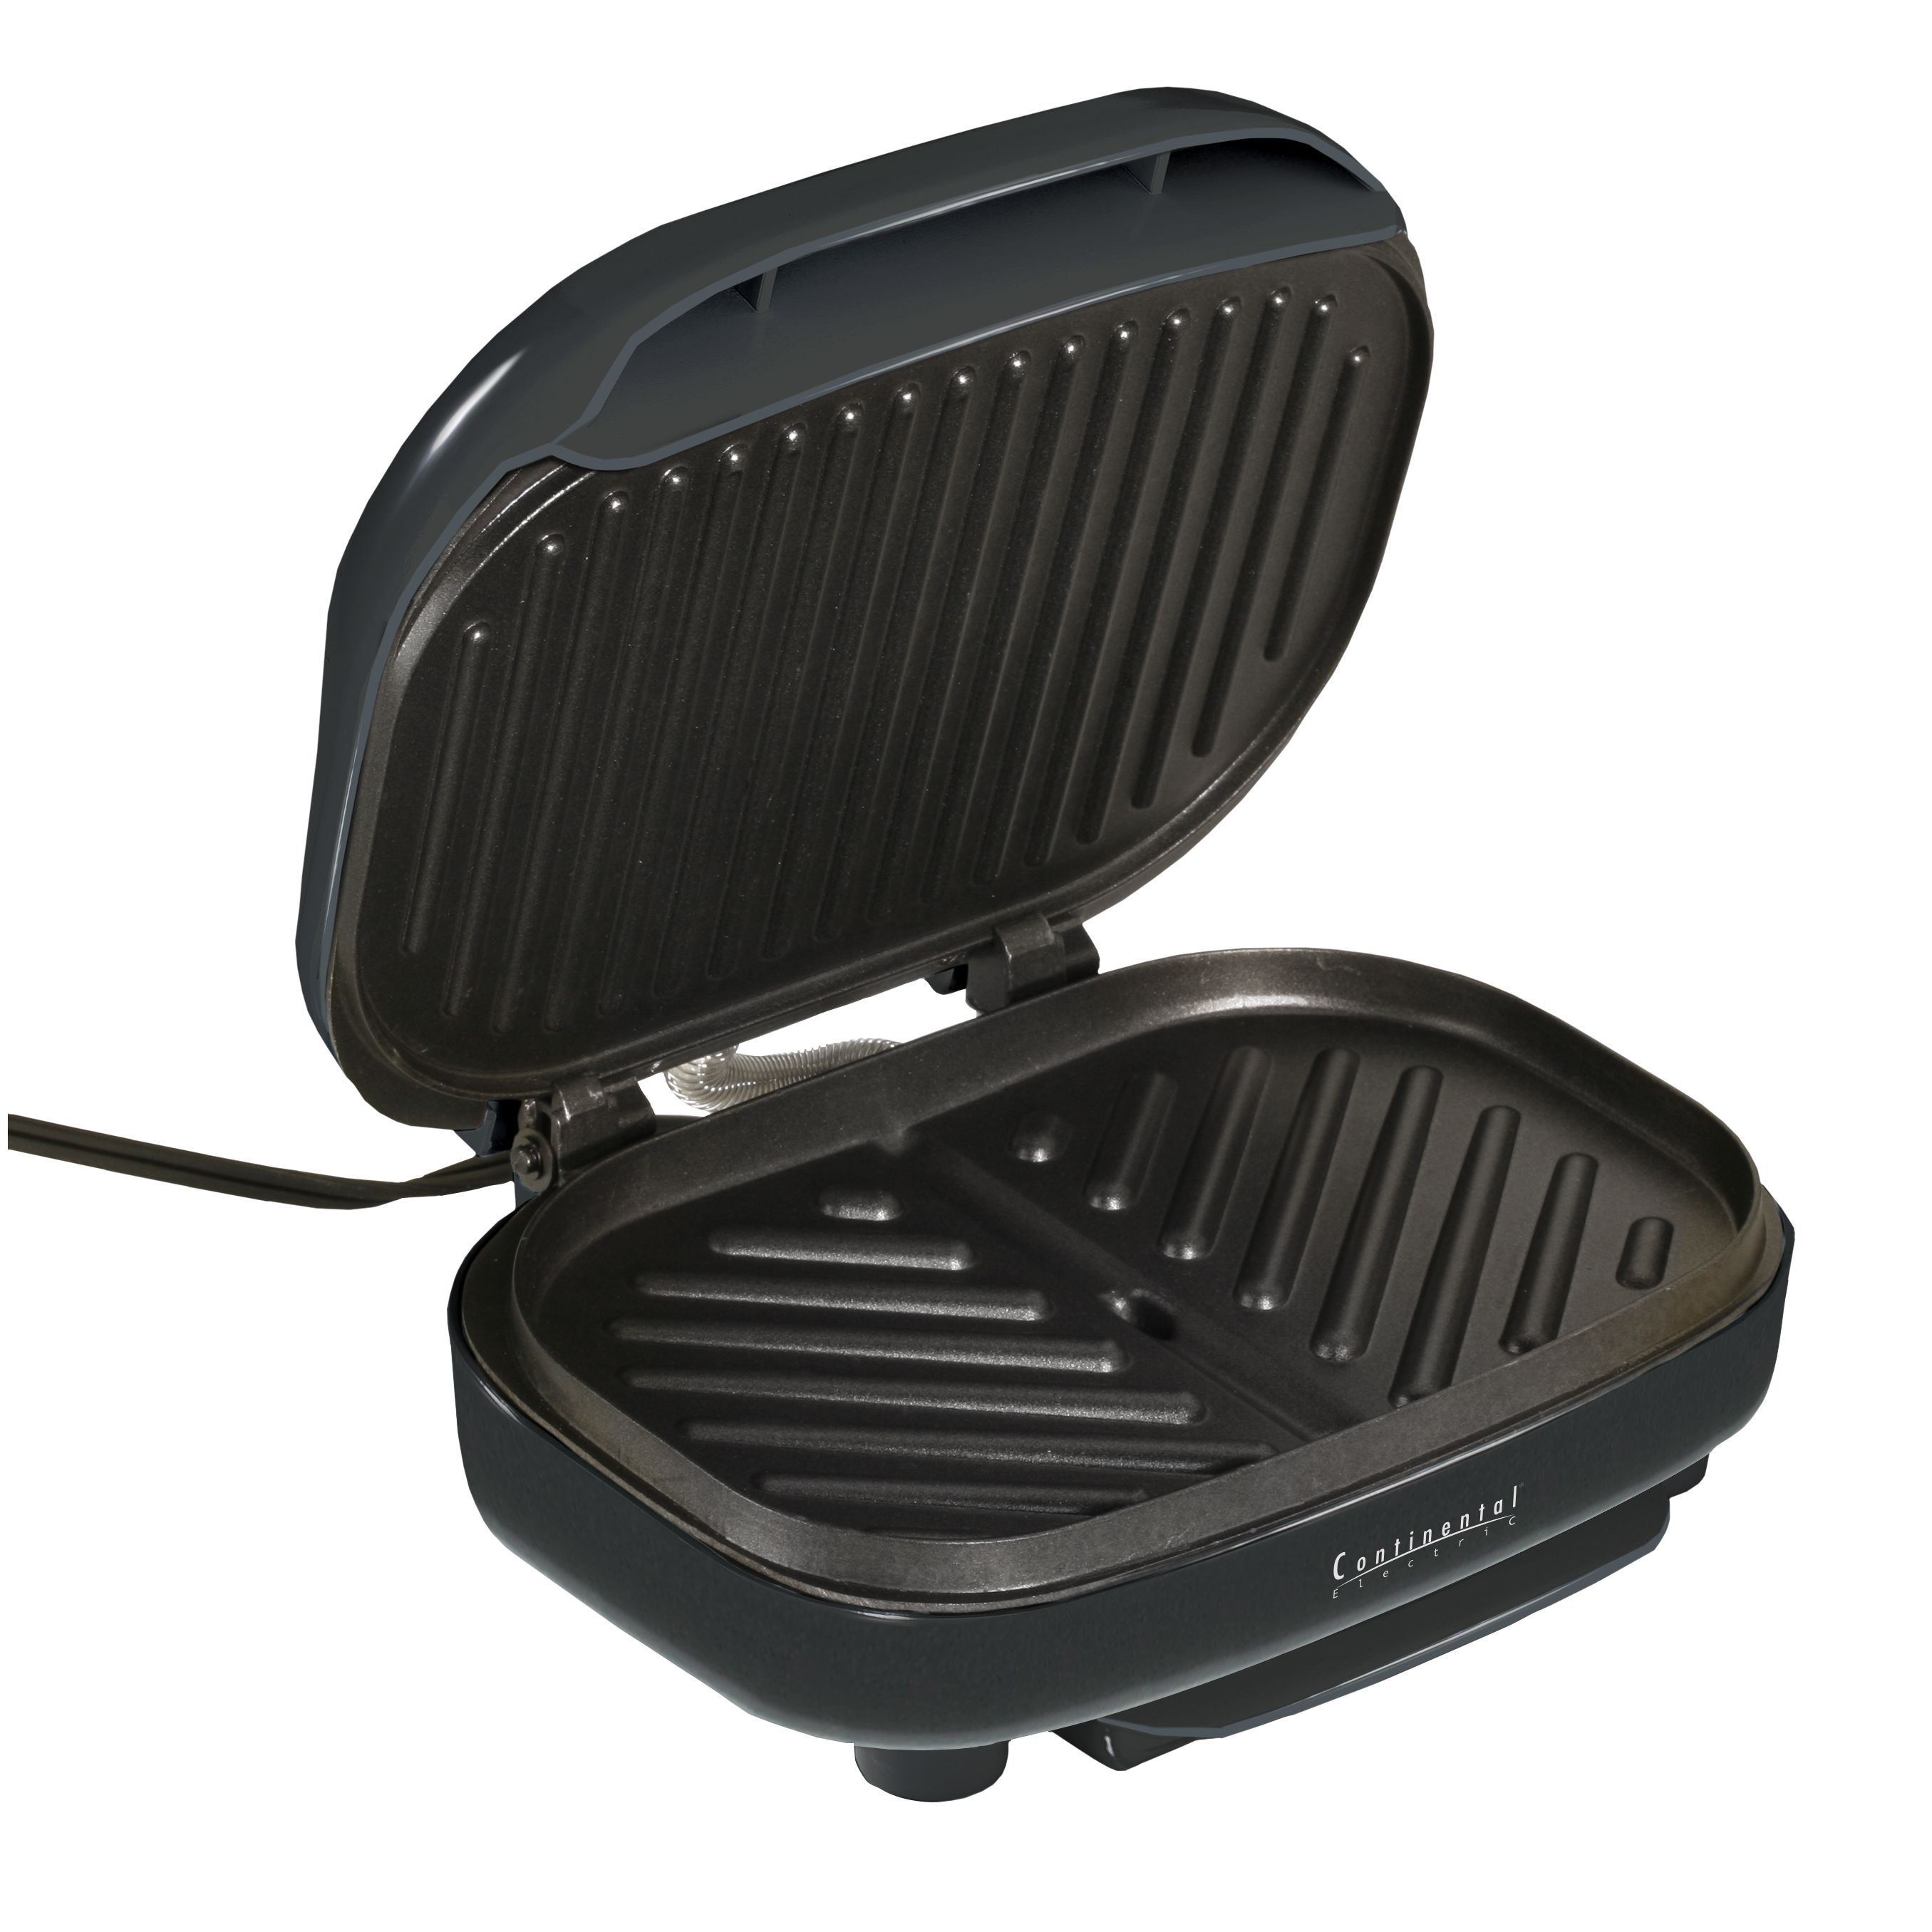 Slap Two Burgers On This Electric Countertop Grill For Grilled Taste Without Venturing Into The Outdoors This